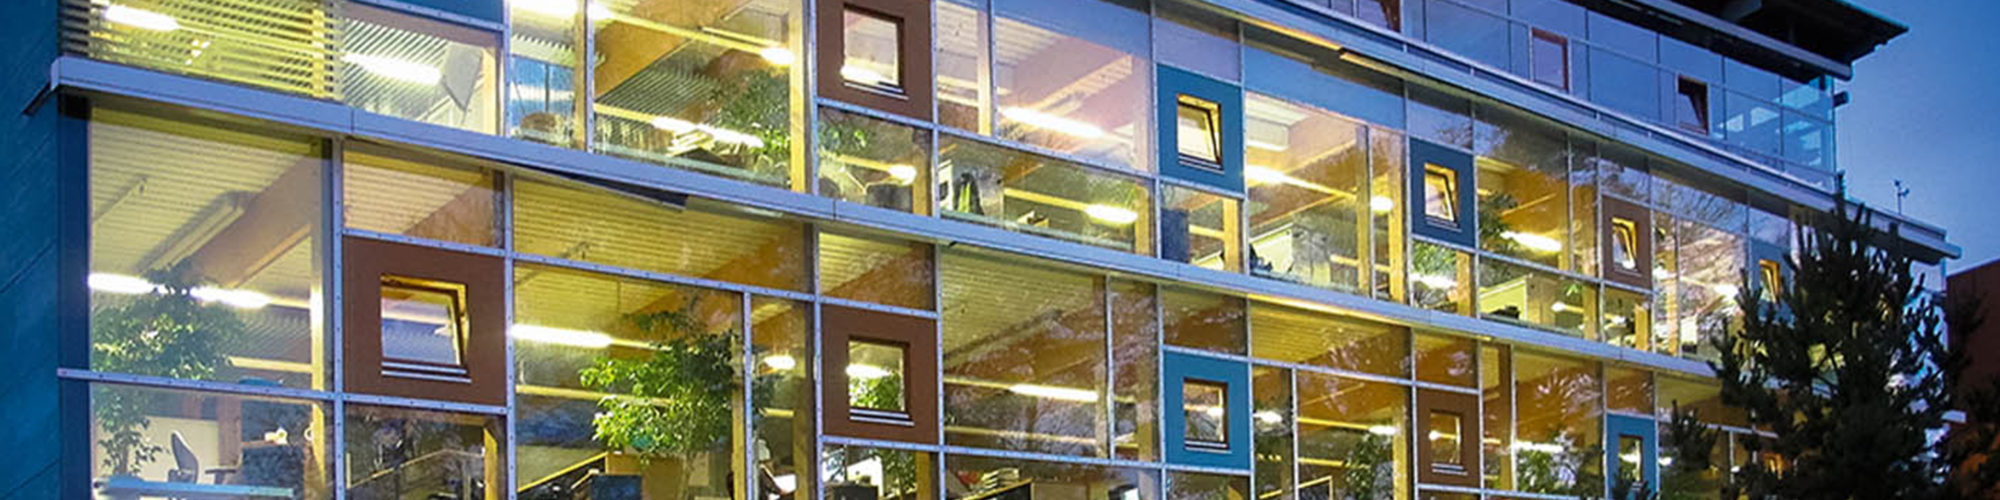 Picture of a building with many glass fronts, valantic Case Study Sortimo